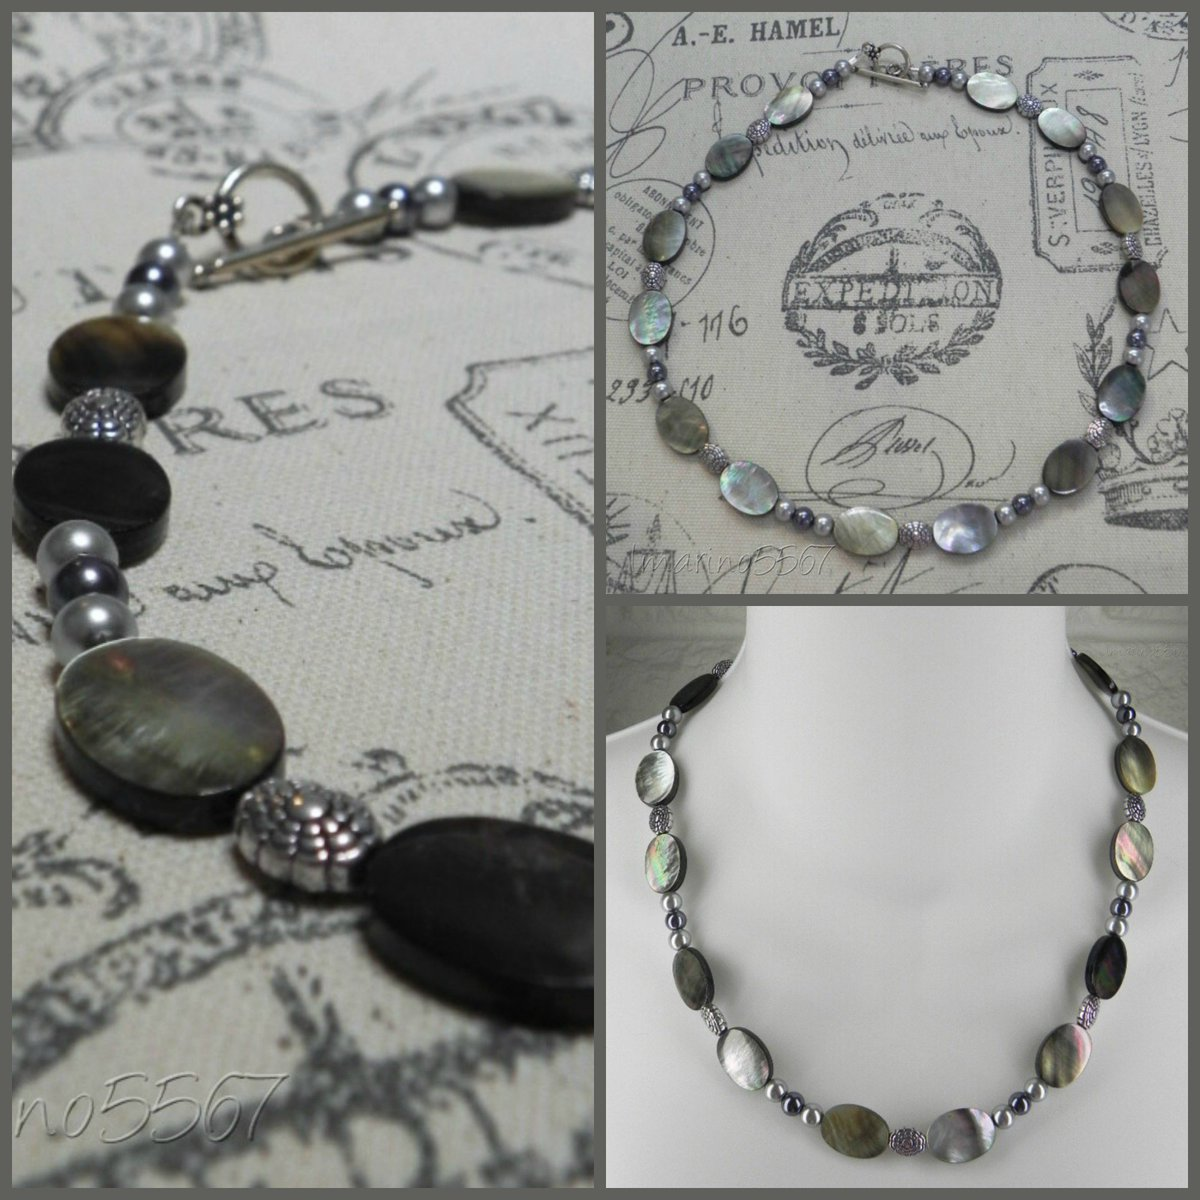 Black Lip Shell Glass Pearl Oval Silver Spacers Ladies 19&quot; #Necklace #Handmade  http:// tinyurl.com/yaaykweg  &nbsp;   #ebay #jewelry #fashion #gifts #StockingStuffers #shopsmall #buyhandmade #smallbiz<br>http://pic.twitter.com/nktpe5ezYs